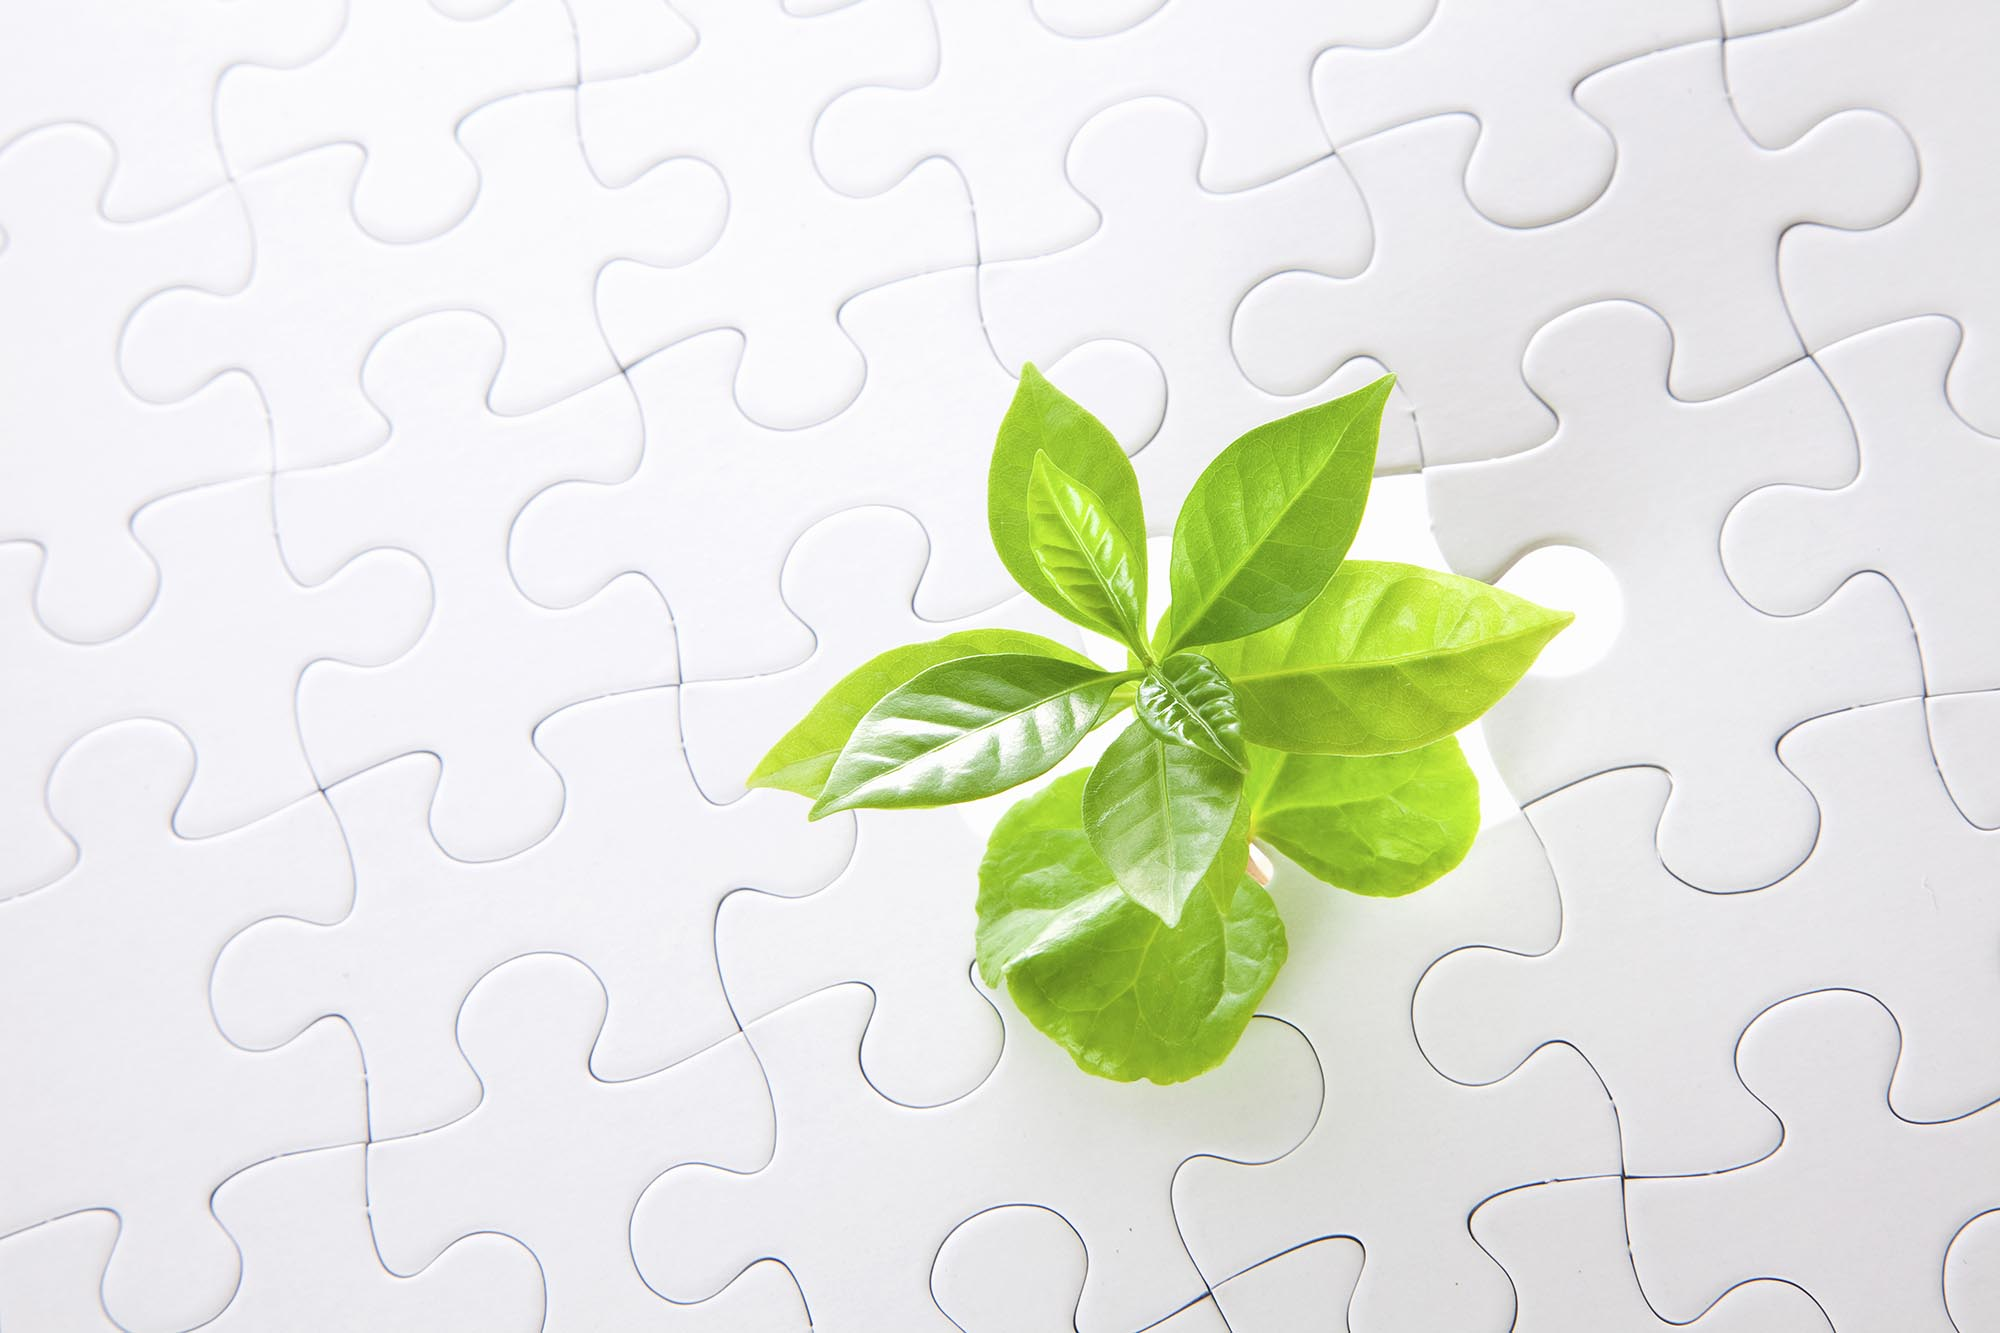 Growth out of puzzle